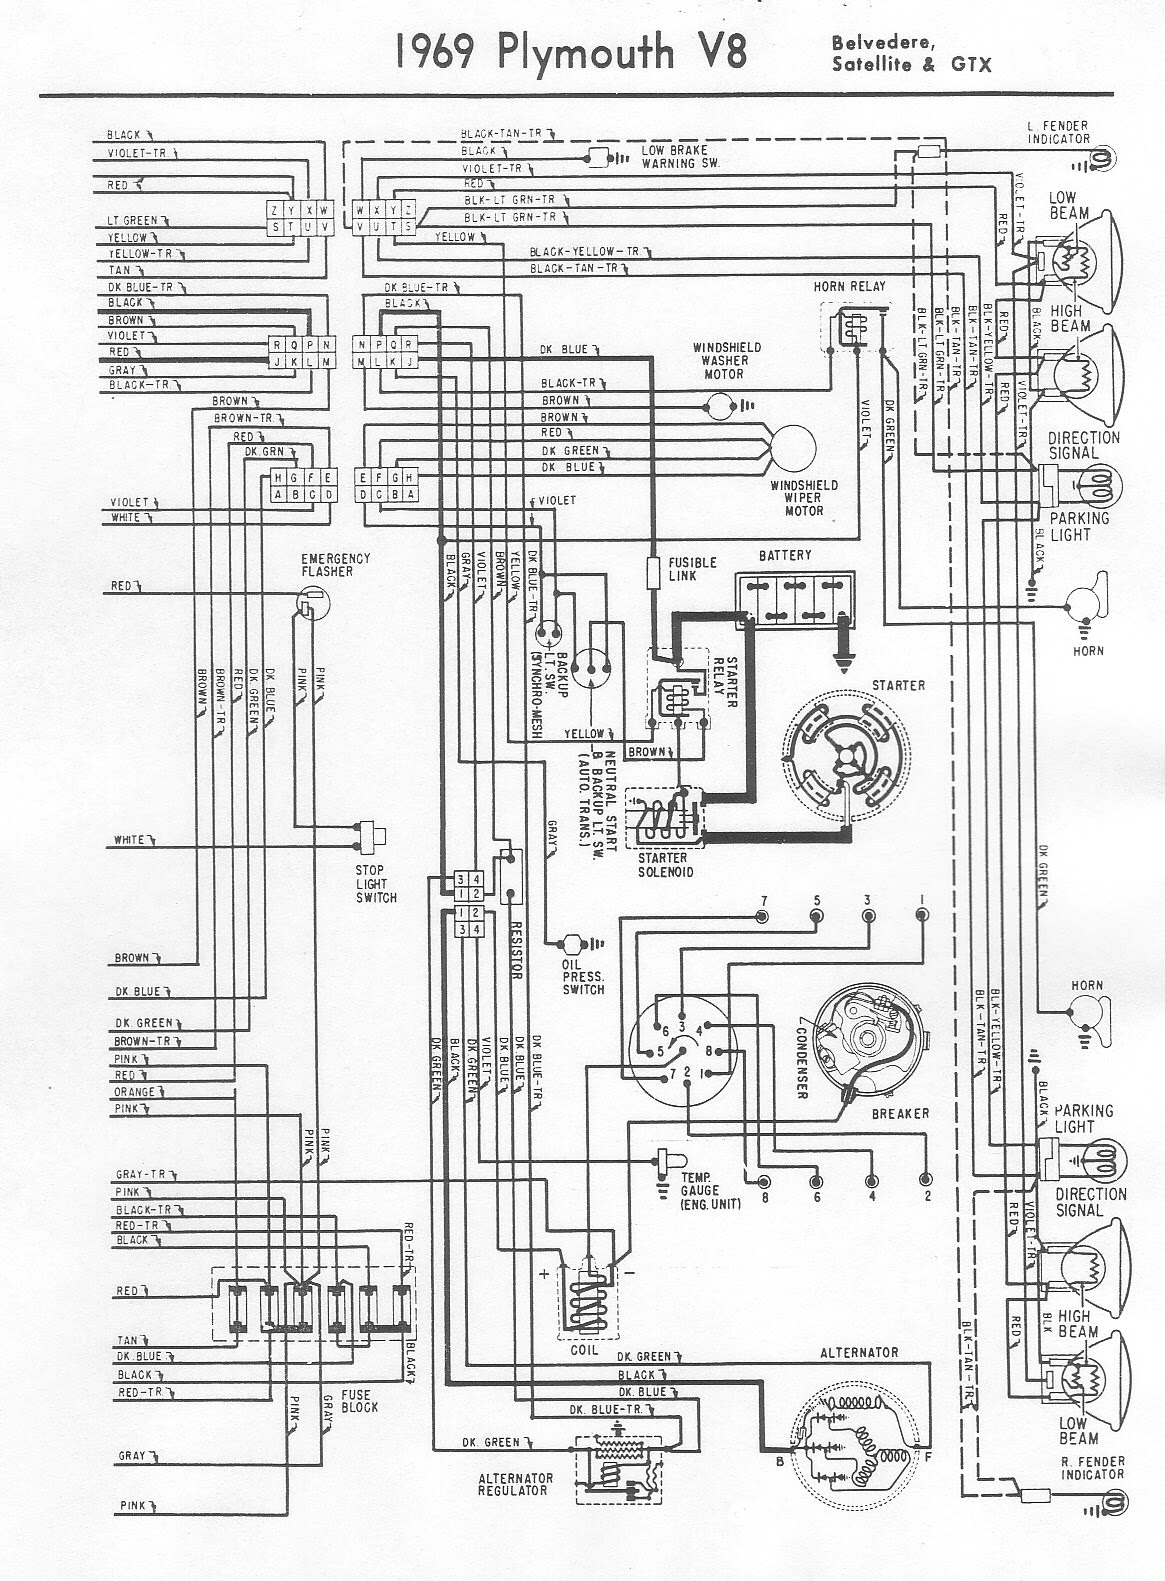 3cd868 69 Plymouth Fury Wiring Diagram Wiring Library